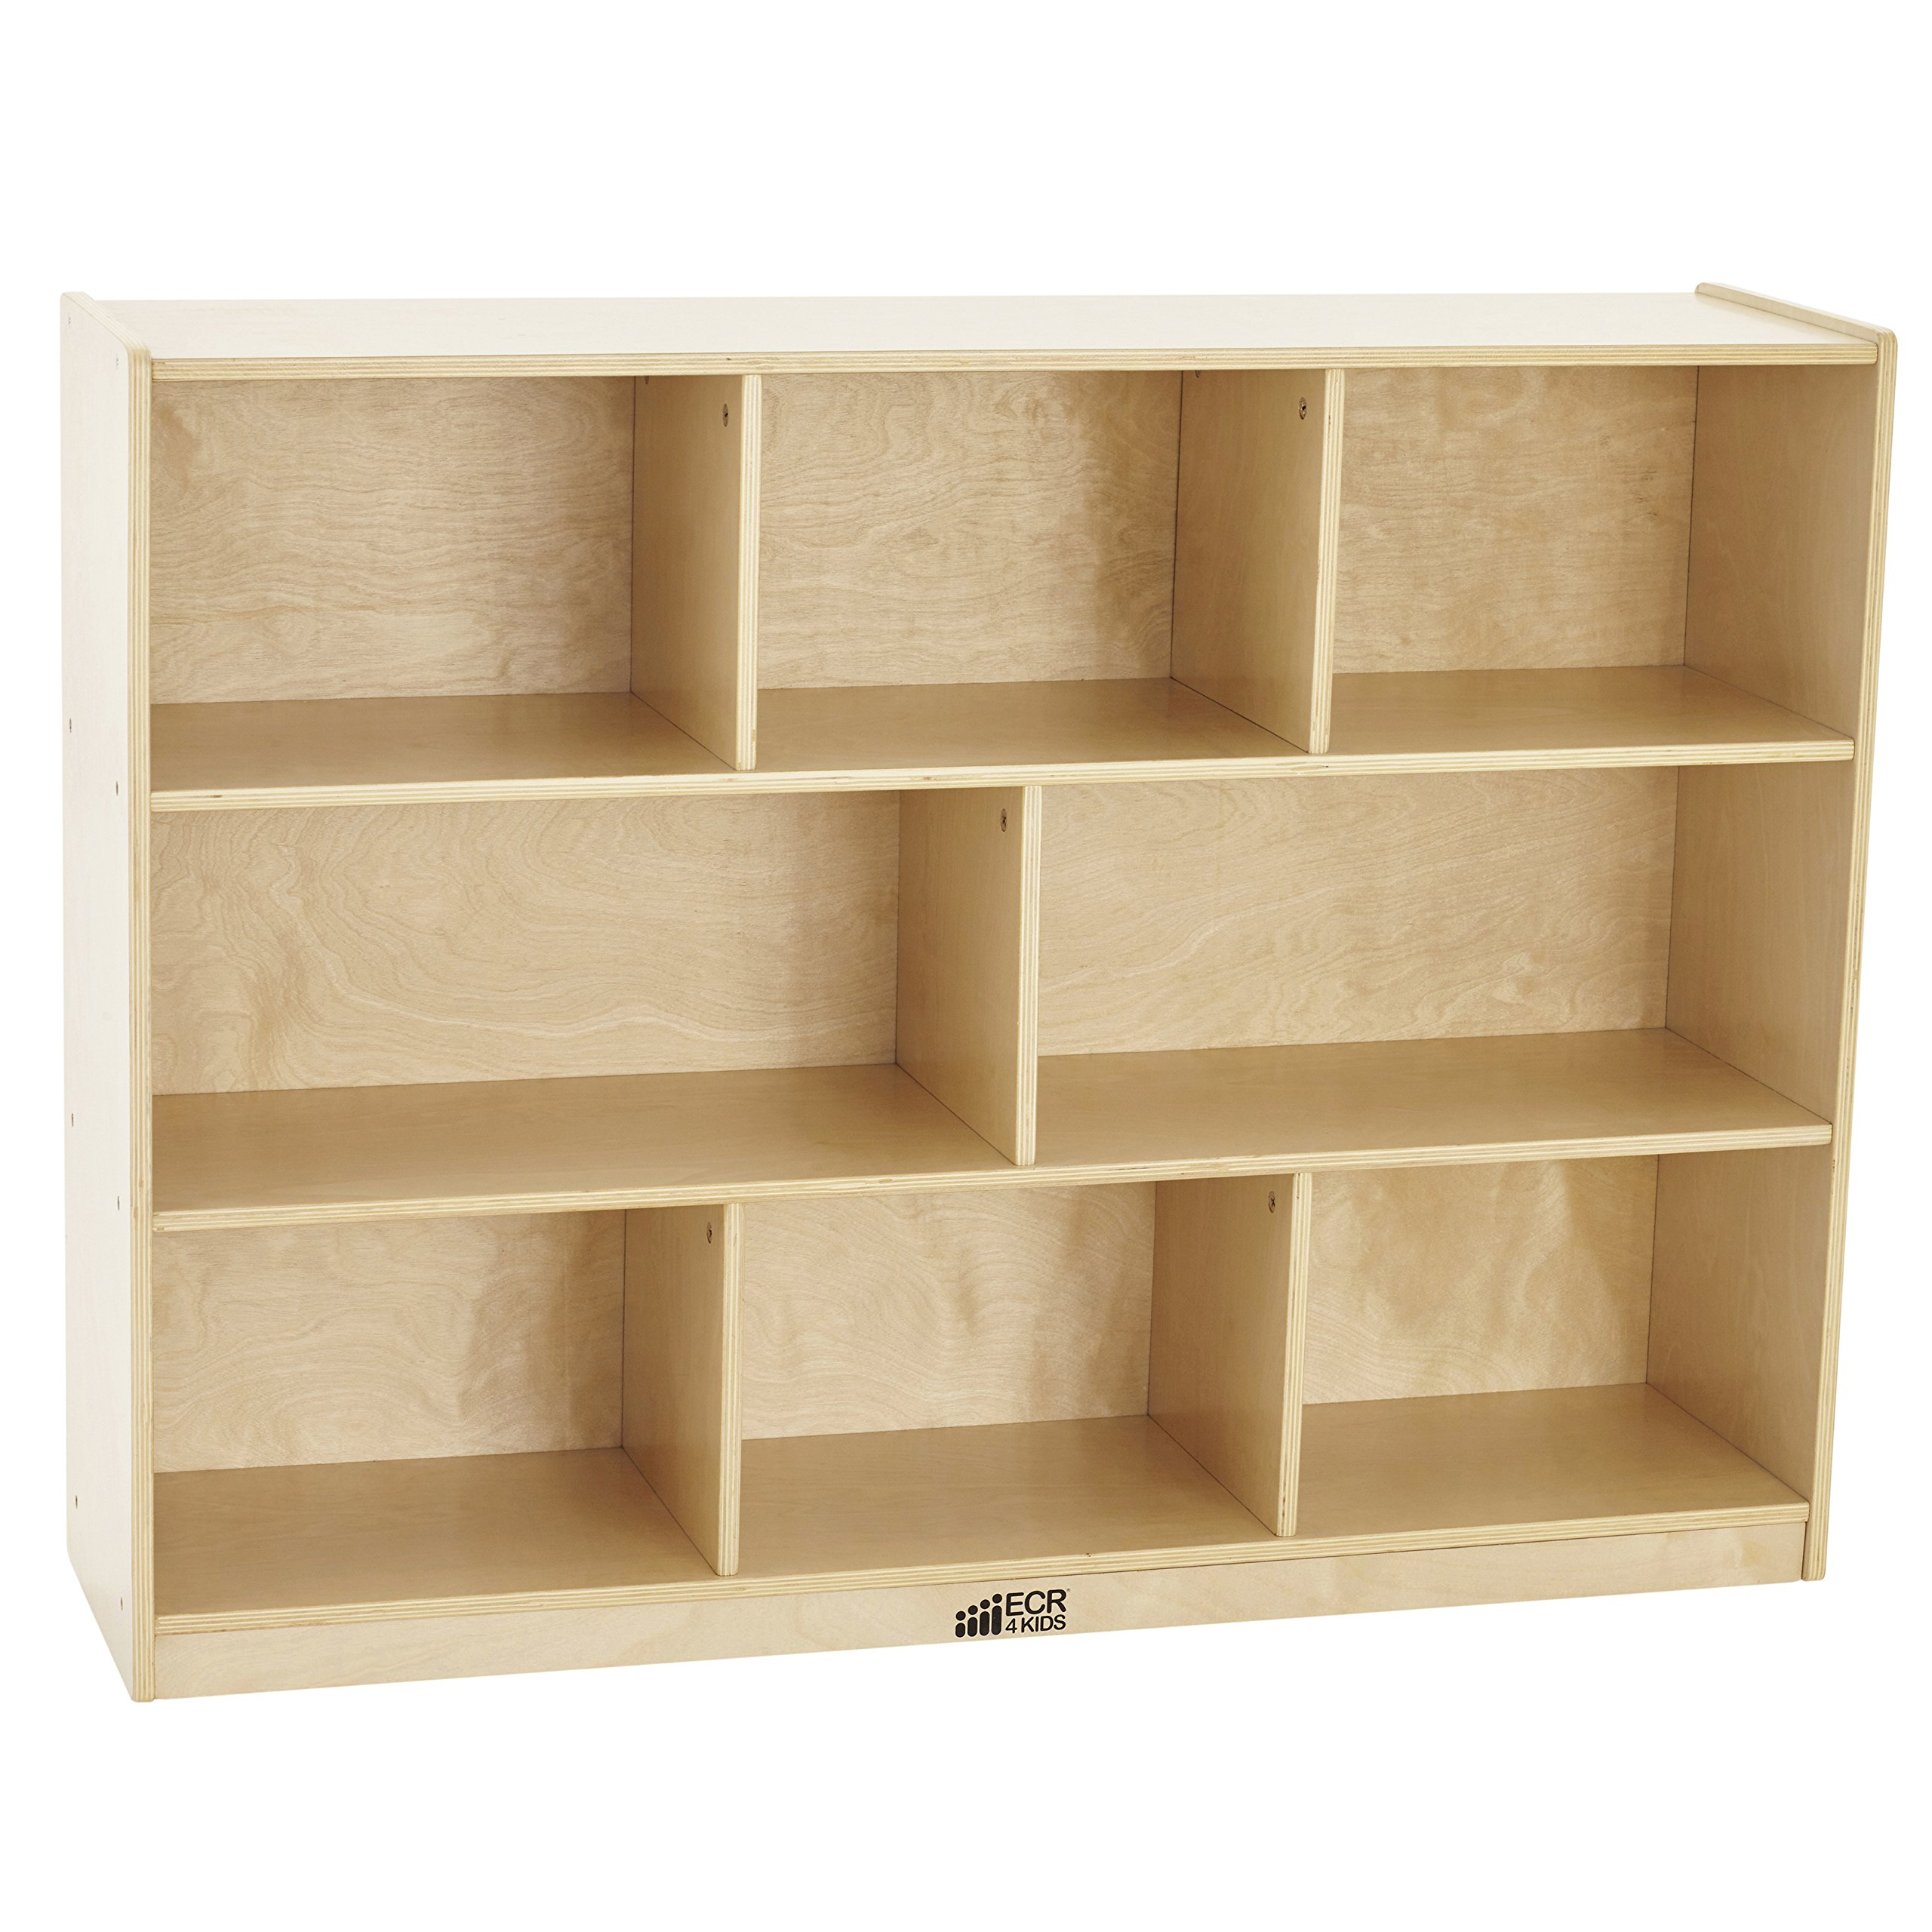 ECR4Kids Birch 8-Section School Classroom Storage Cabinet with Casters, Natural, 36'' H